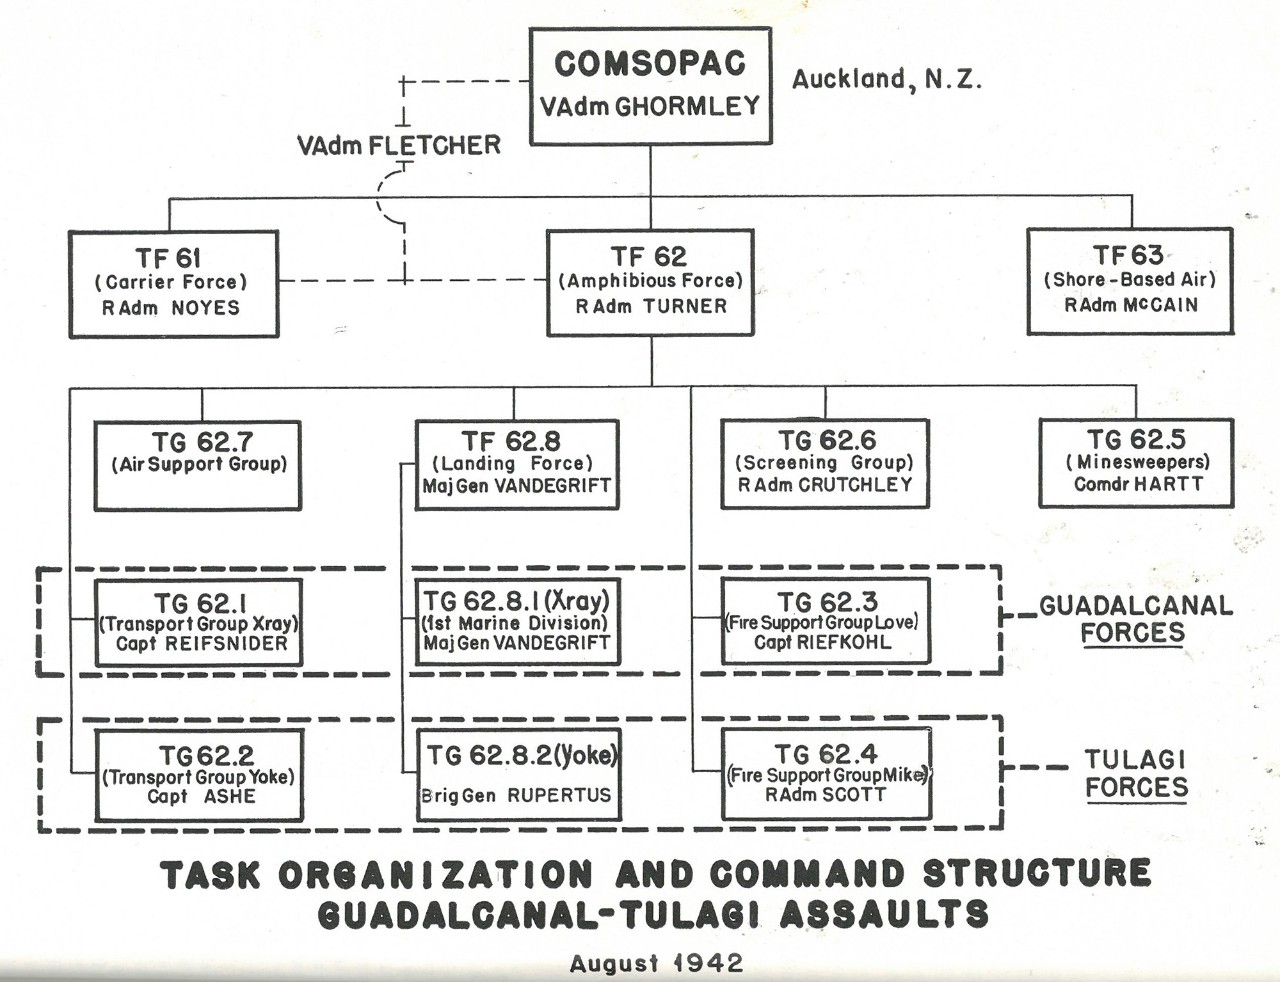 Task Organization and Command Structure, Guadalcanal-Tulagi Assaults, August 1942